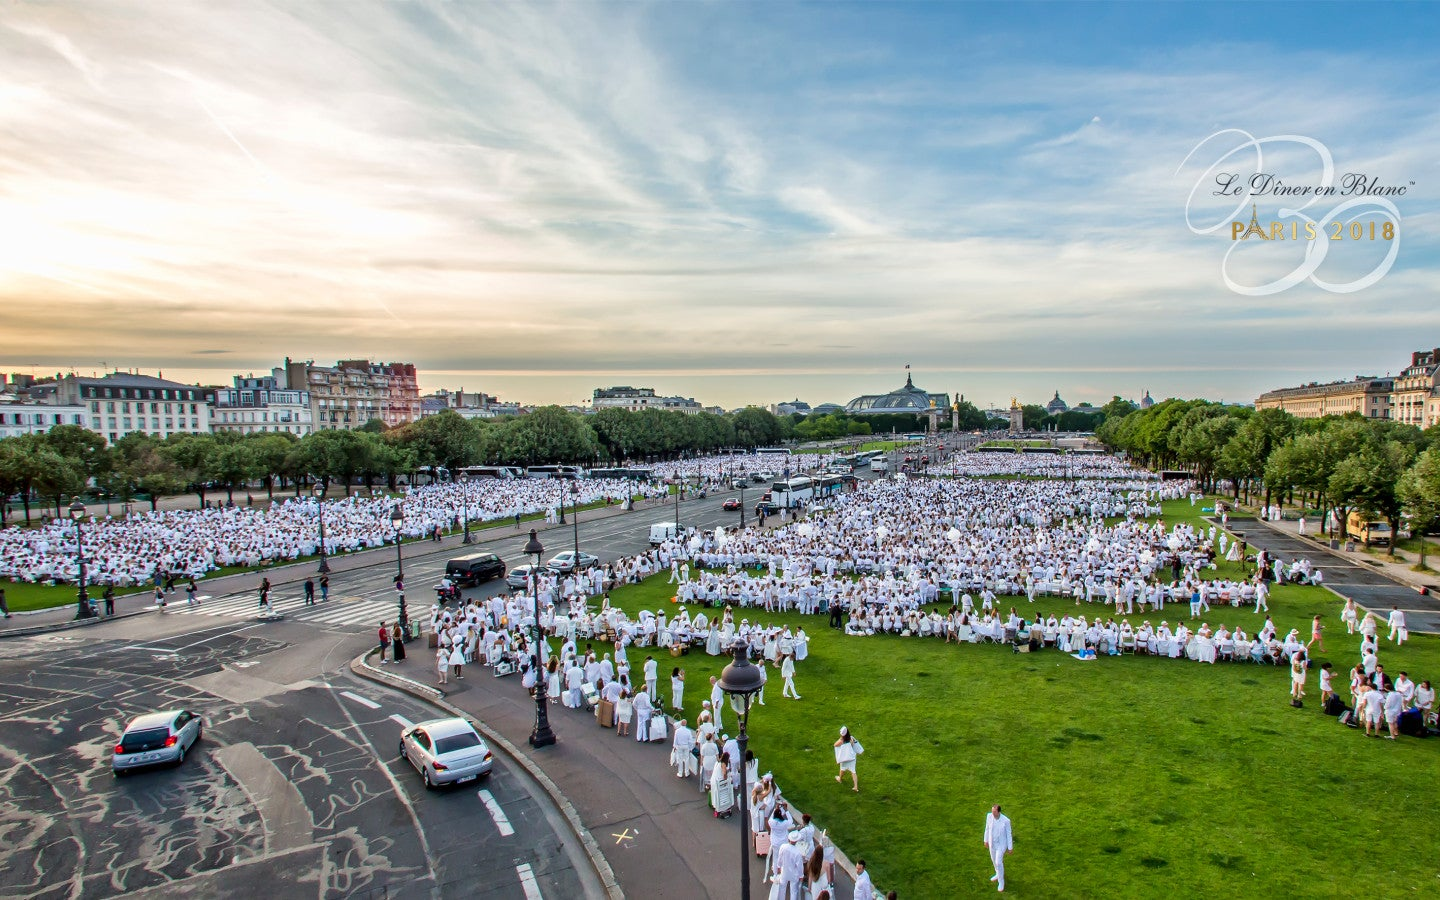 Diner en Blanc Paris - Andrea Bolley | SWAGGER Magazine